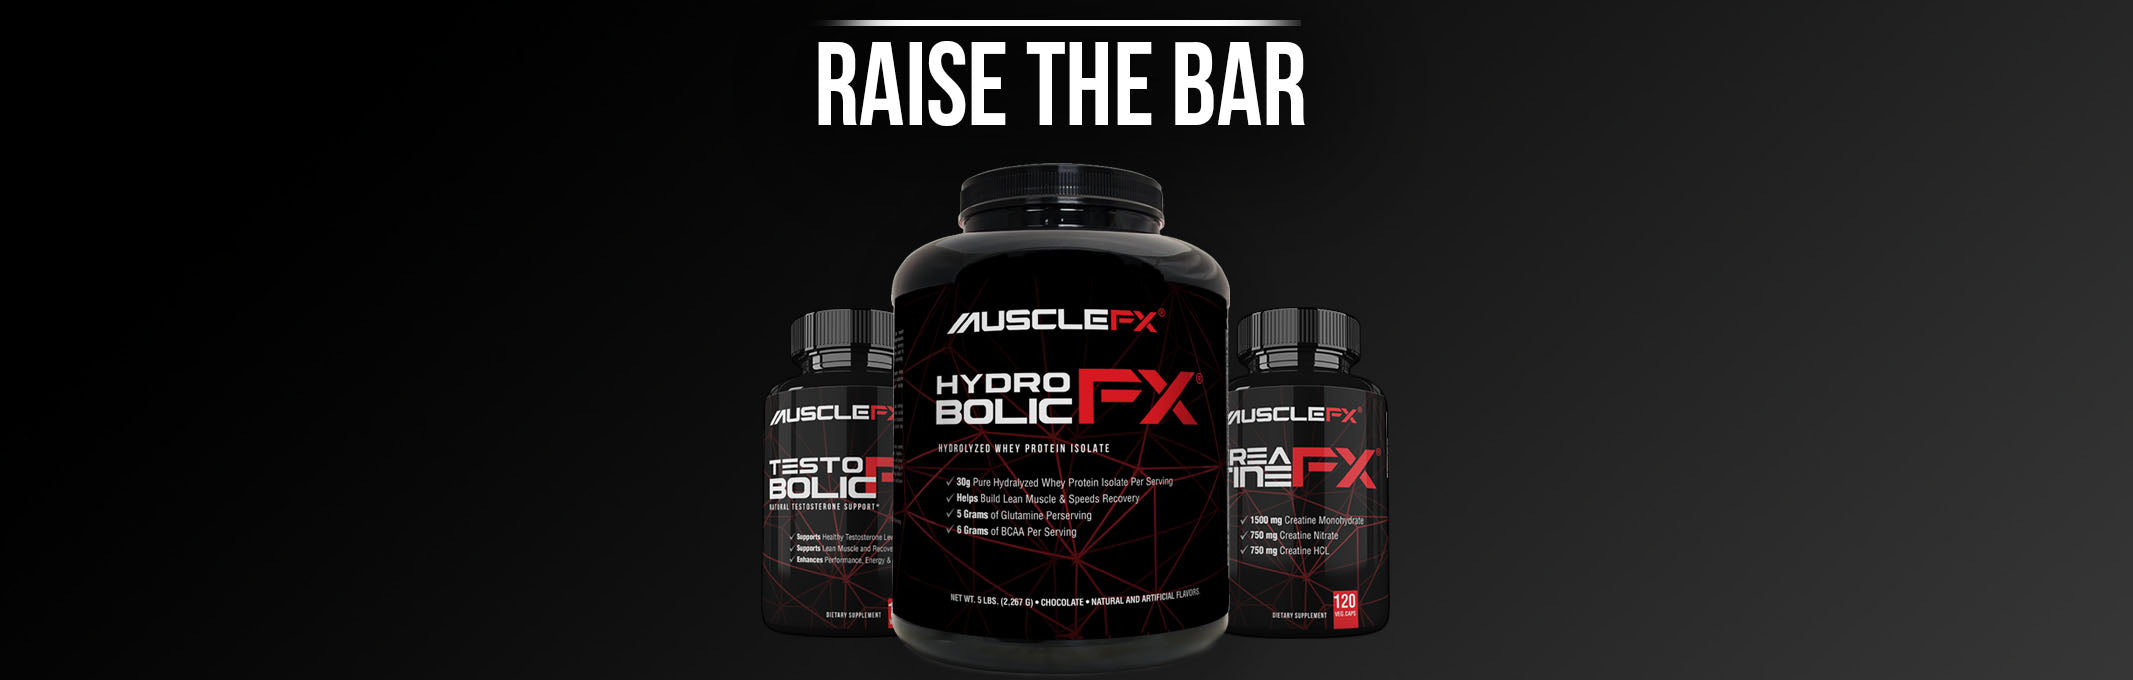 https://www.getmusclefx.com/products/hydrobolic-fx